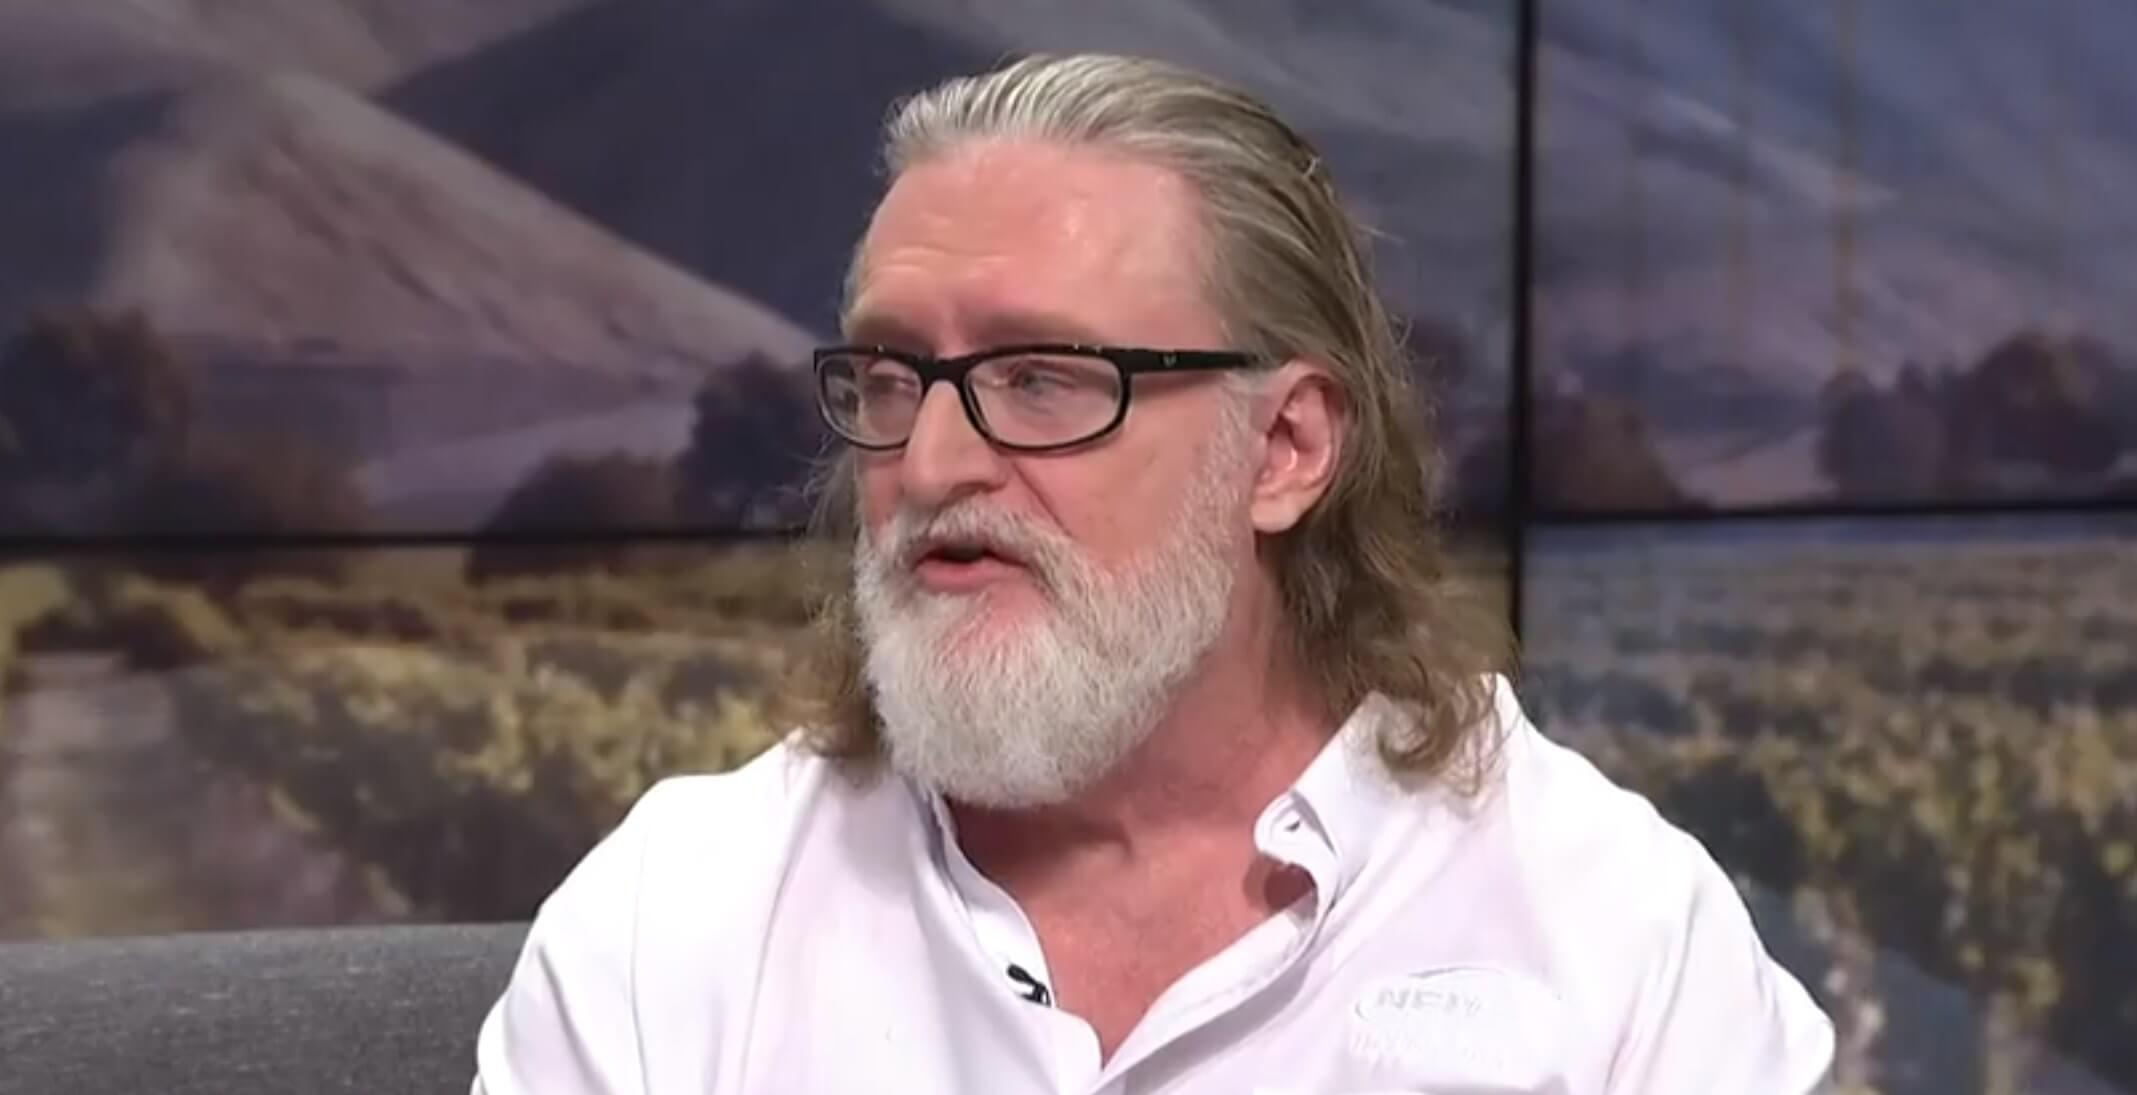 Gabe Newell says the Xbox Series X beats the PS5